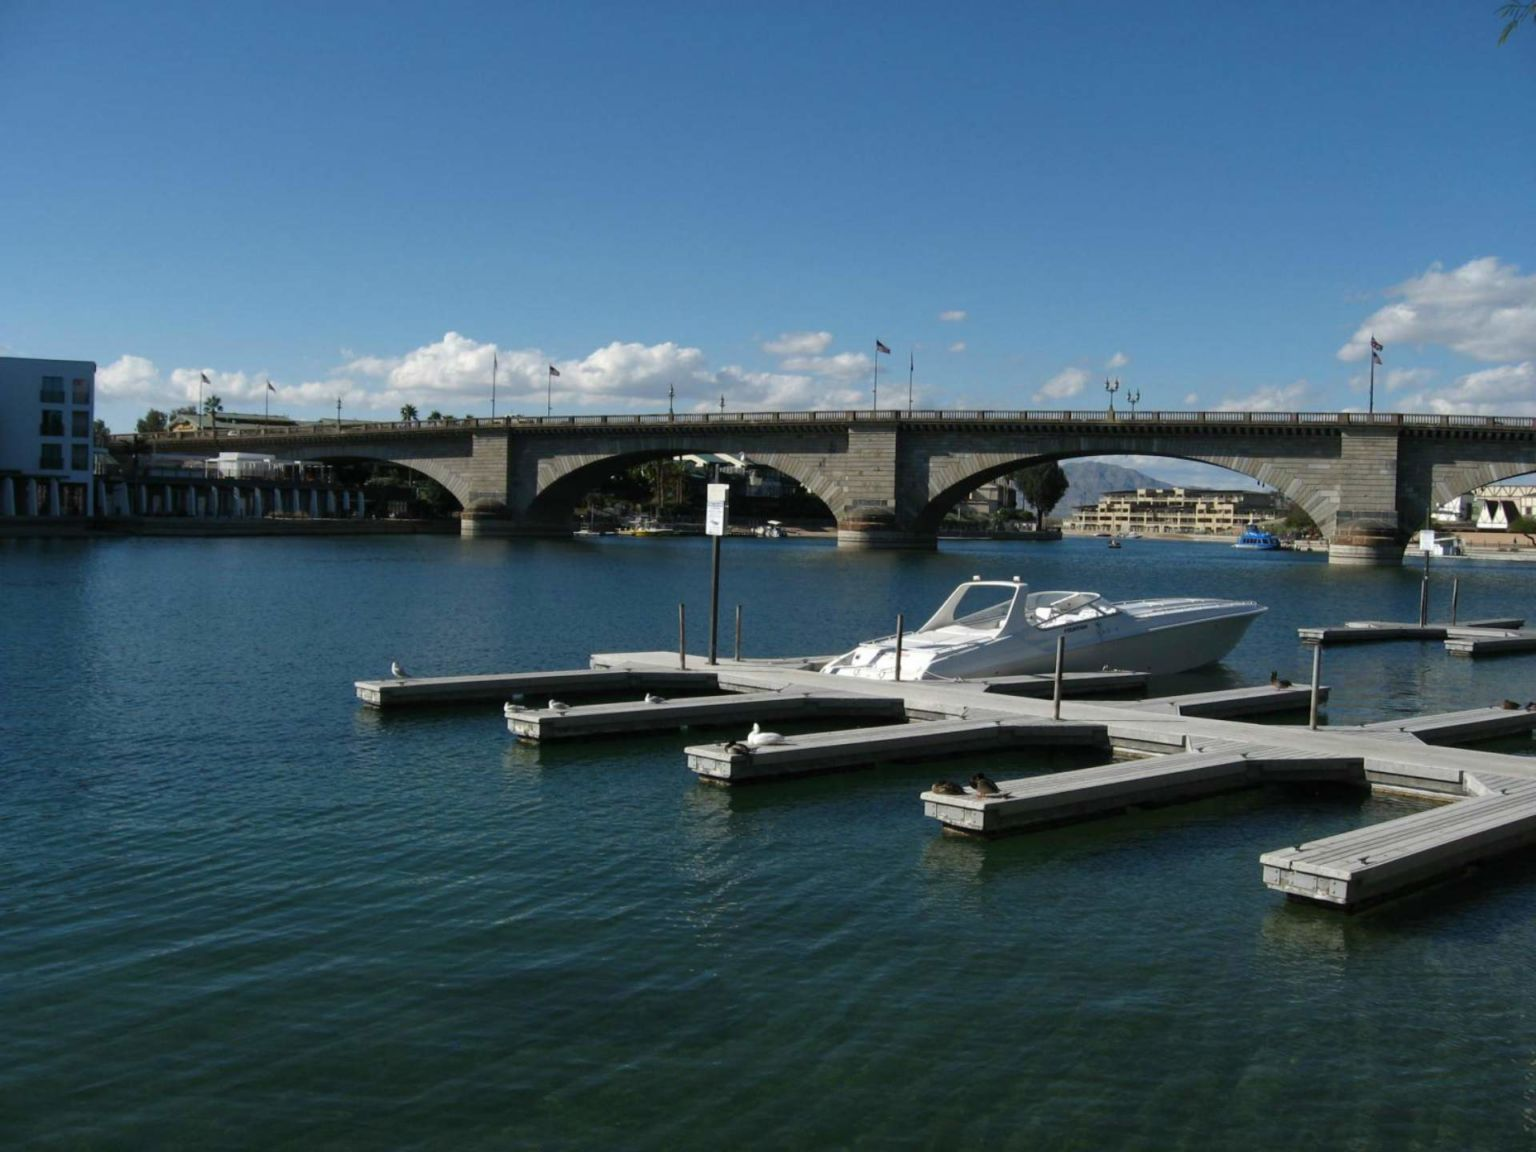 http://www.tripper.pt/wp-content/uploads/2016/06/London-Bridge-in-Lake-Havasu-City-768x576@2x.jpg